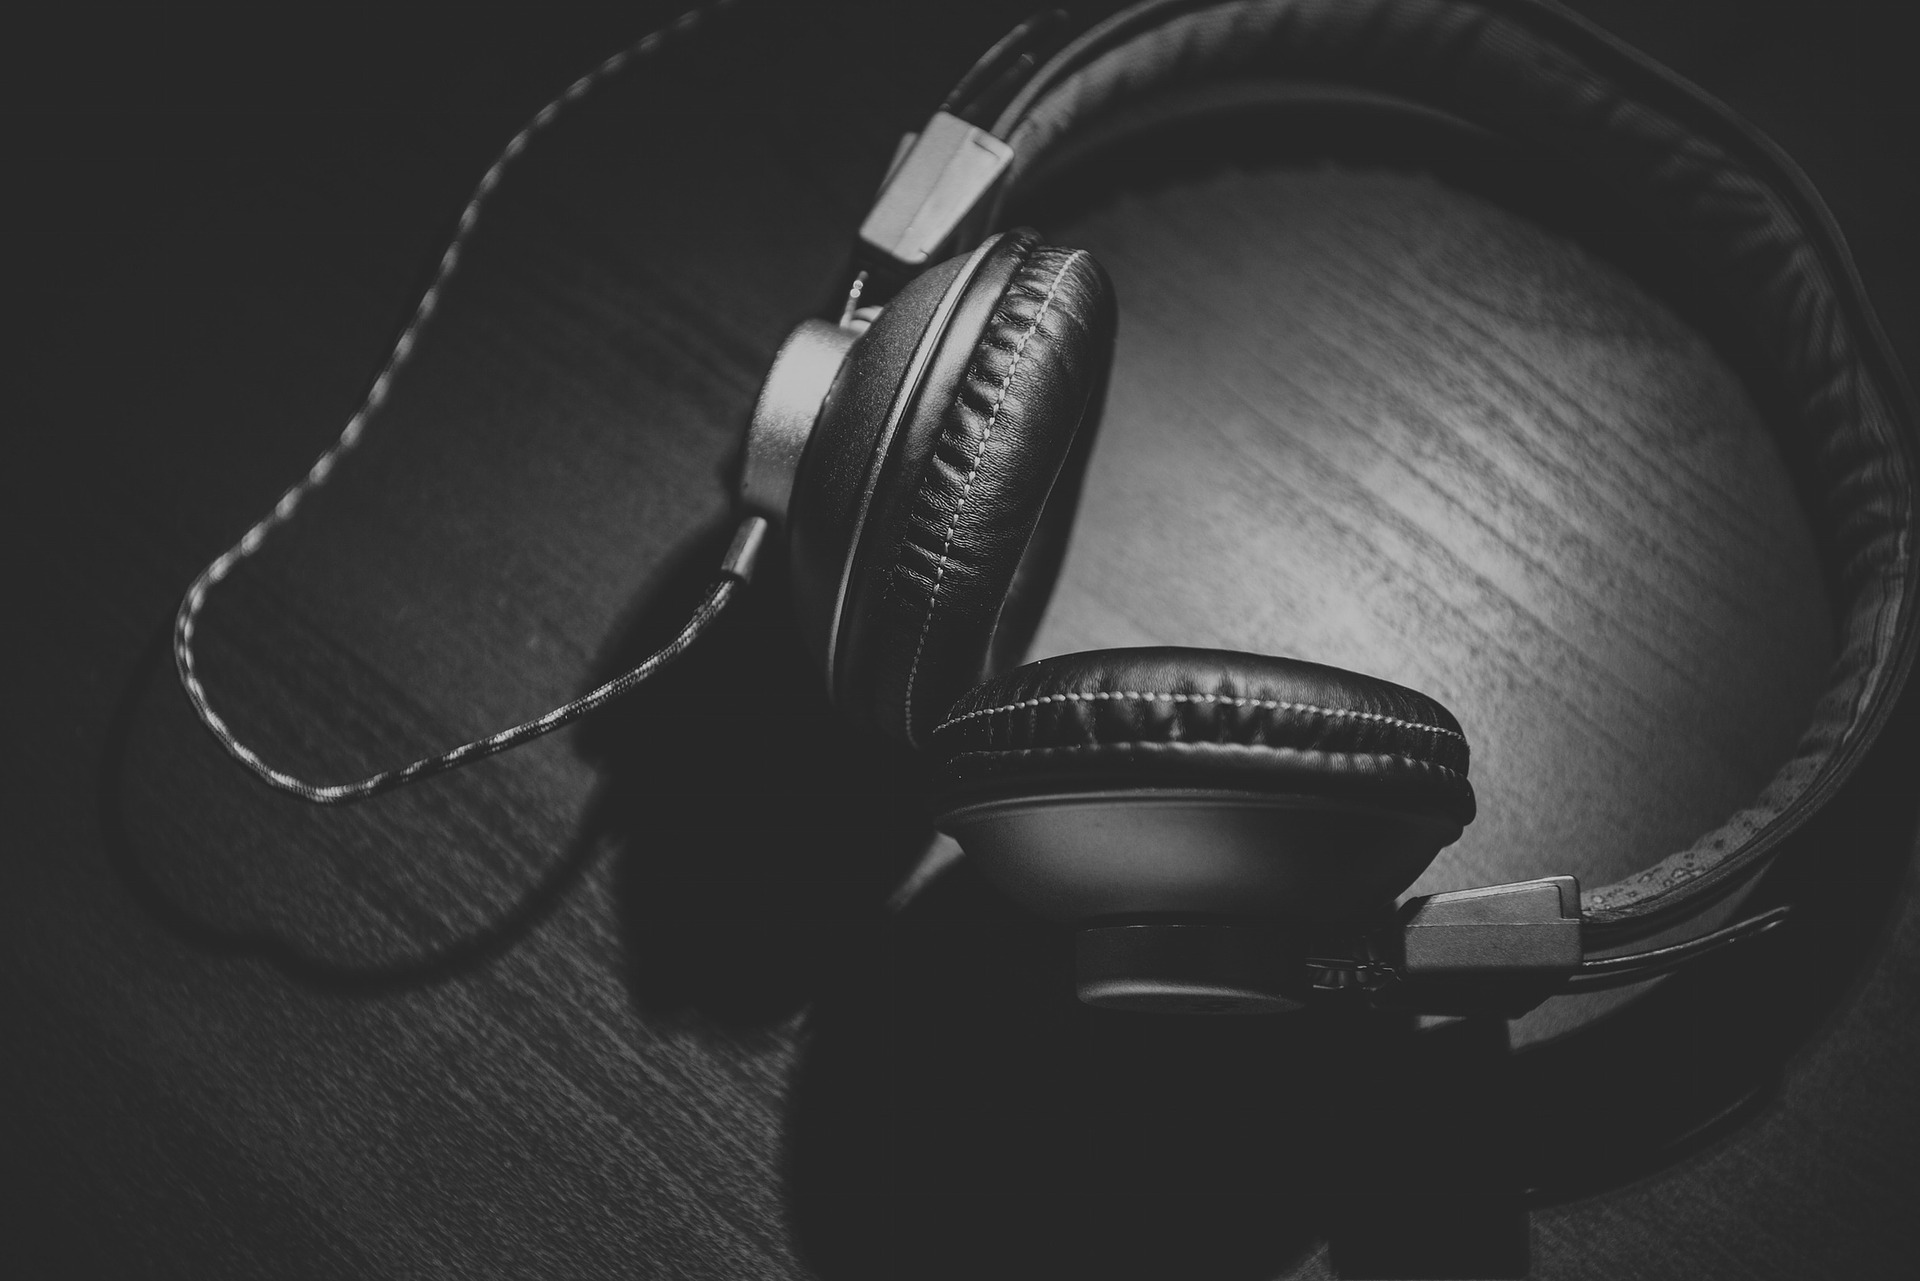 Where Does Audio Fit Into Your Digital Media/Content Strategy?